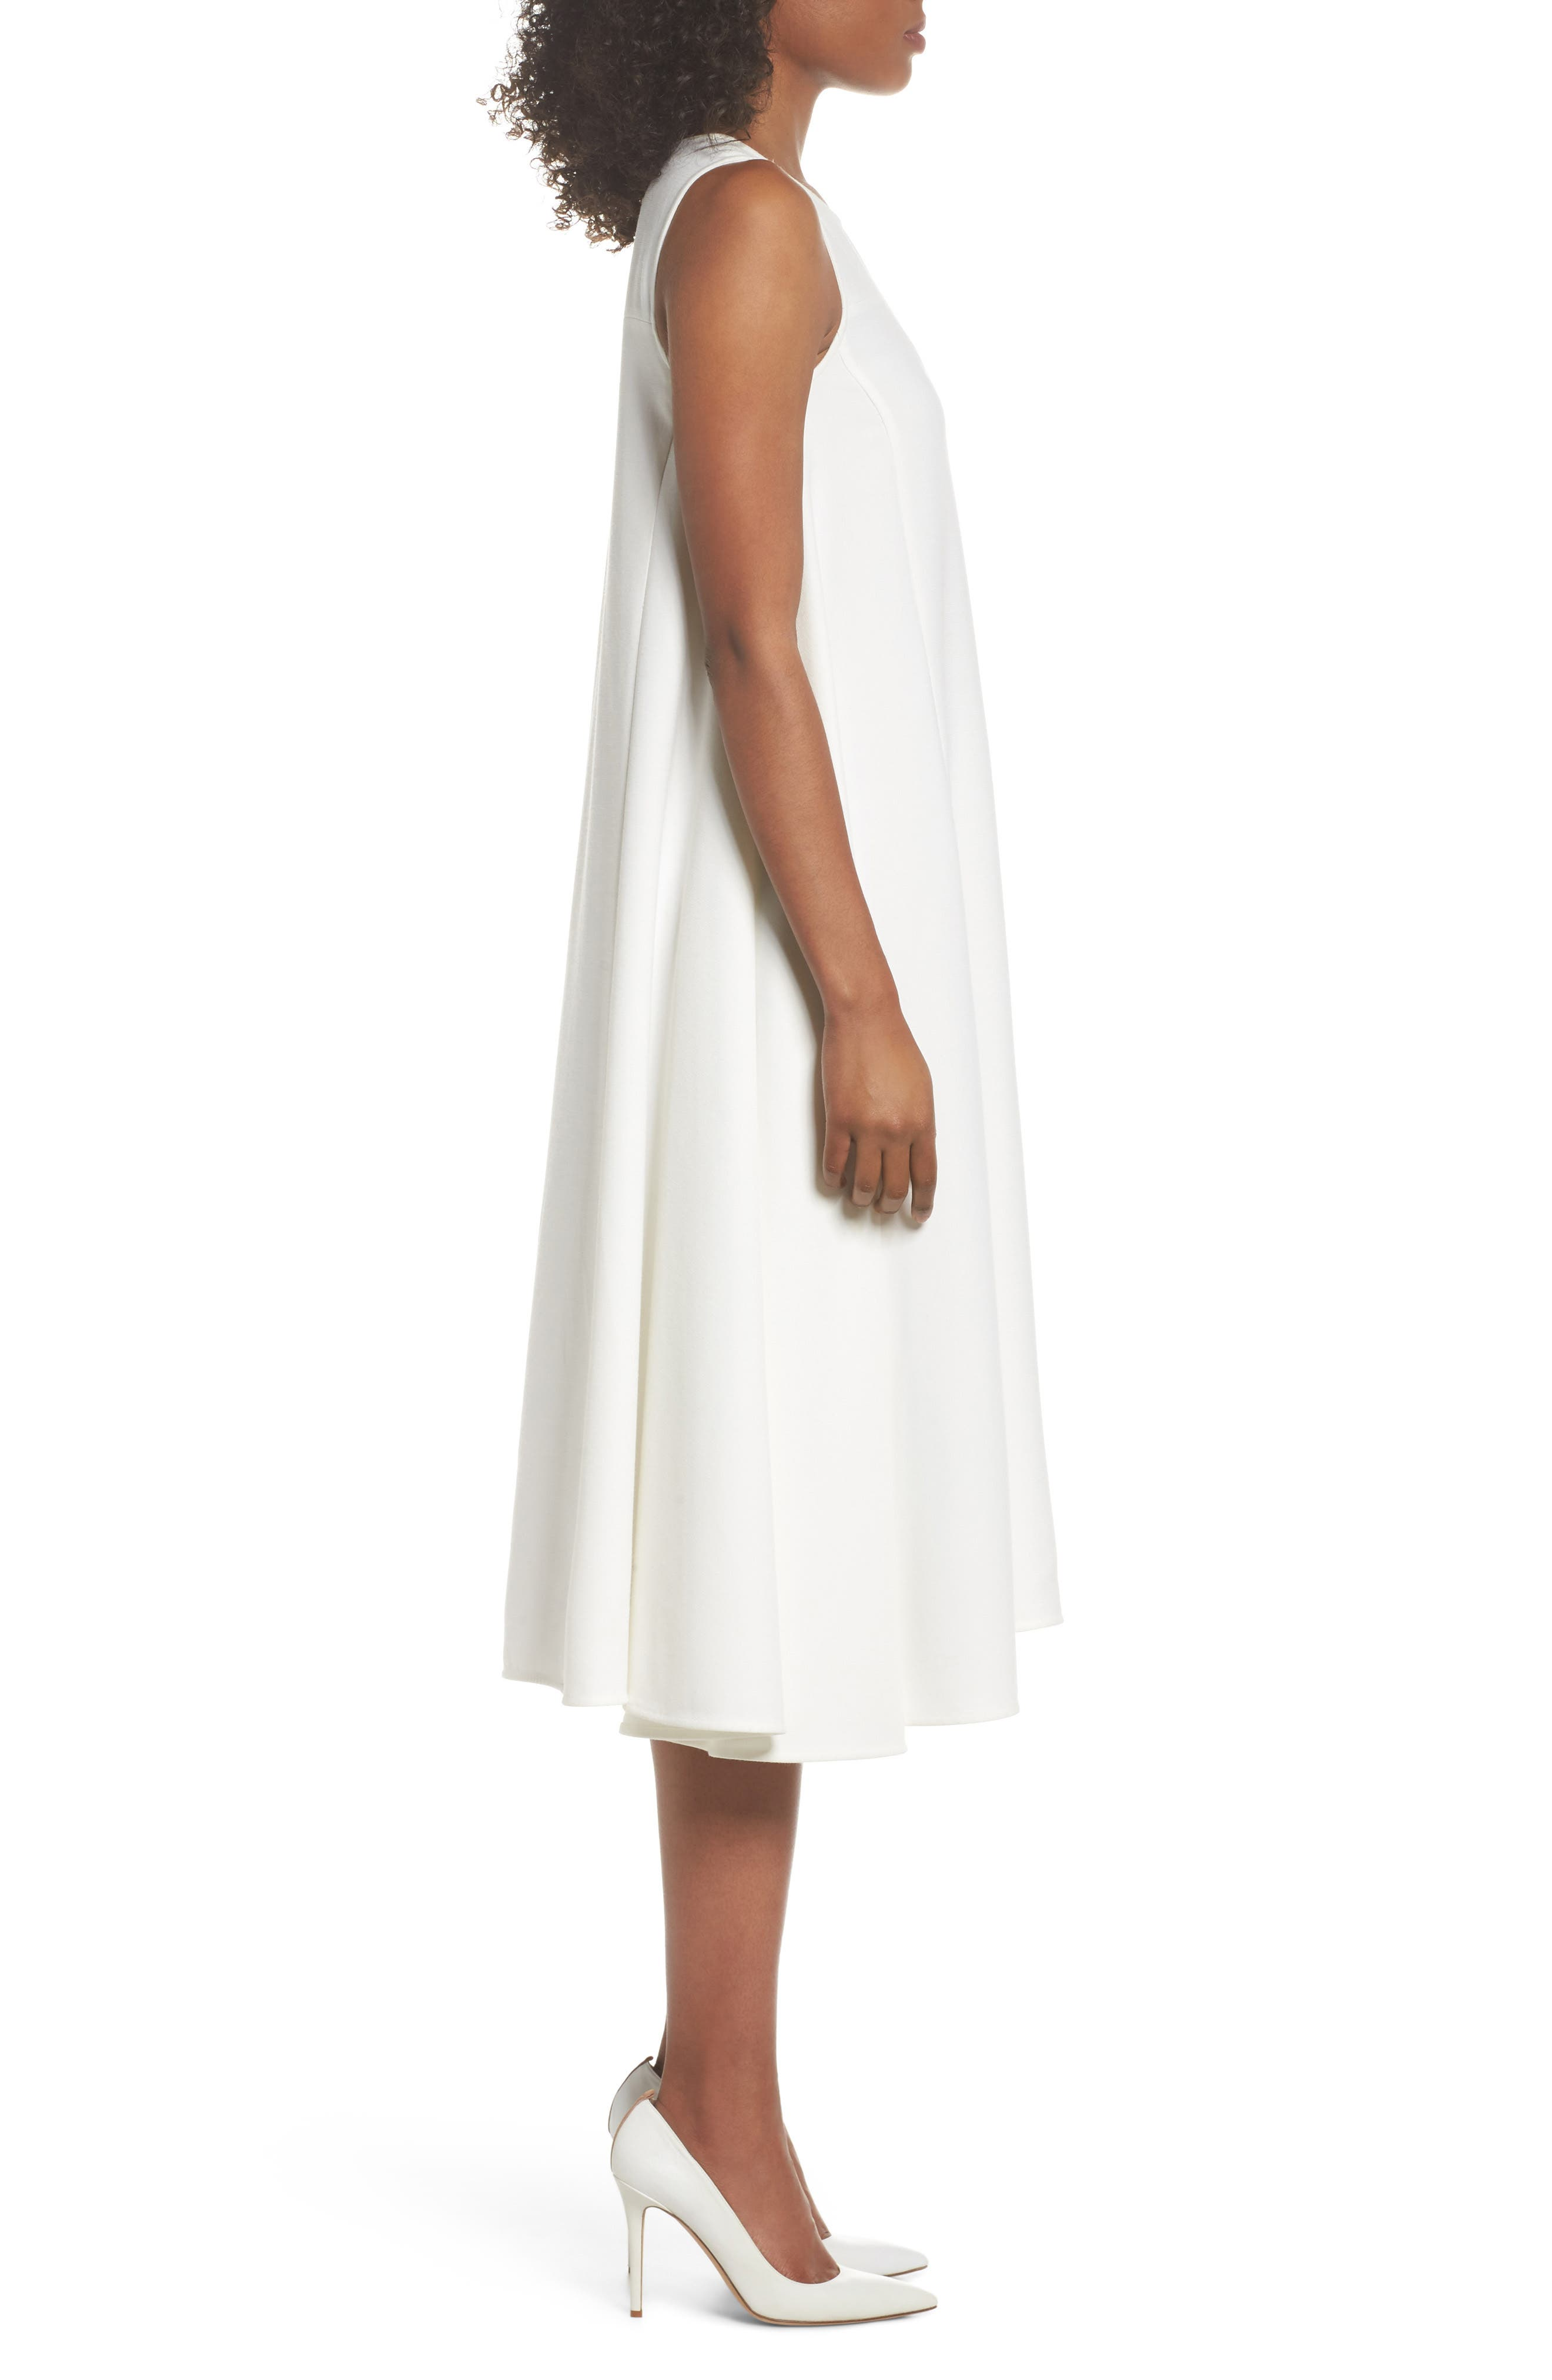 Sunday Brunch Sleeveless Midi Dress,                             Alternate thumbnail 3, color,                             100